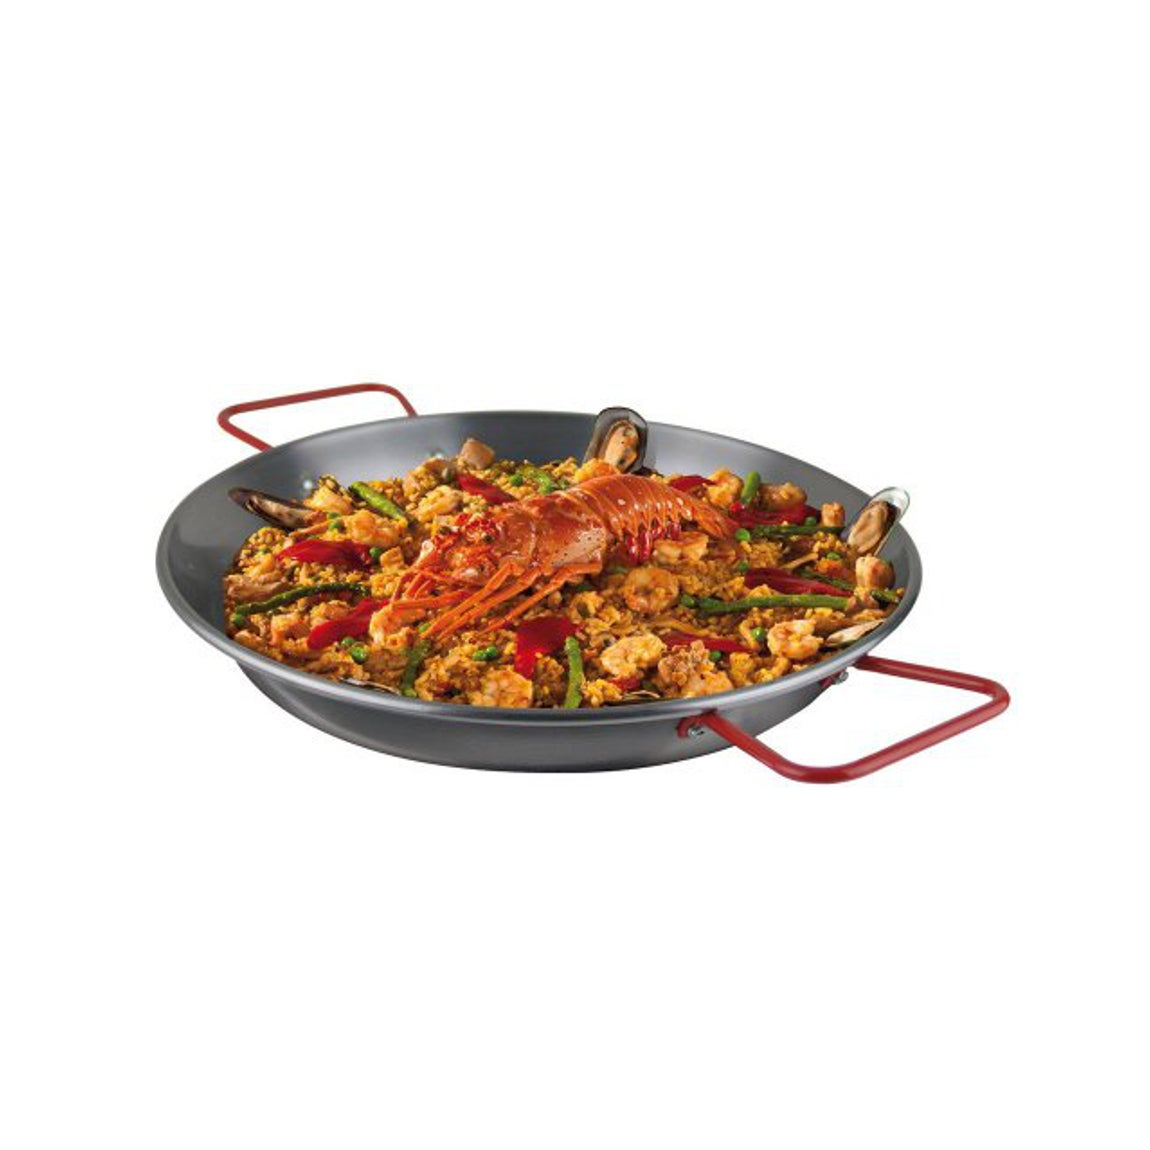 Magefesa Carbon Steel Paella Pan Overstock 10083237 36 D X 2 H Silver